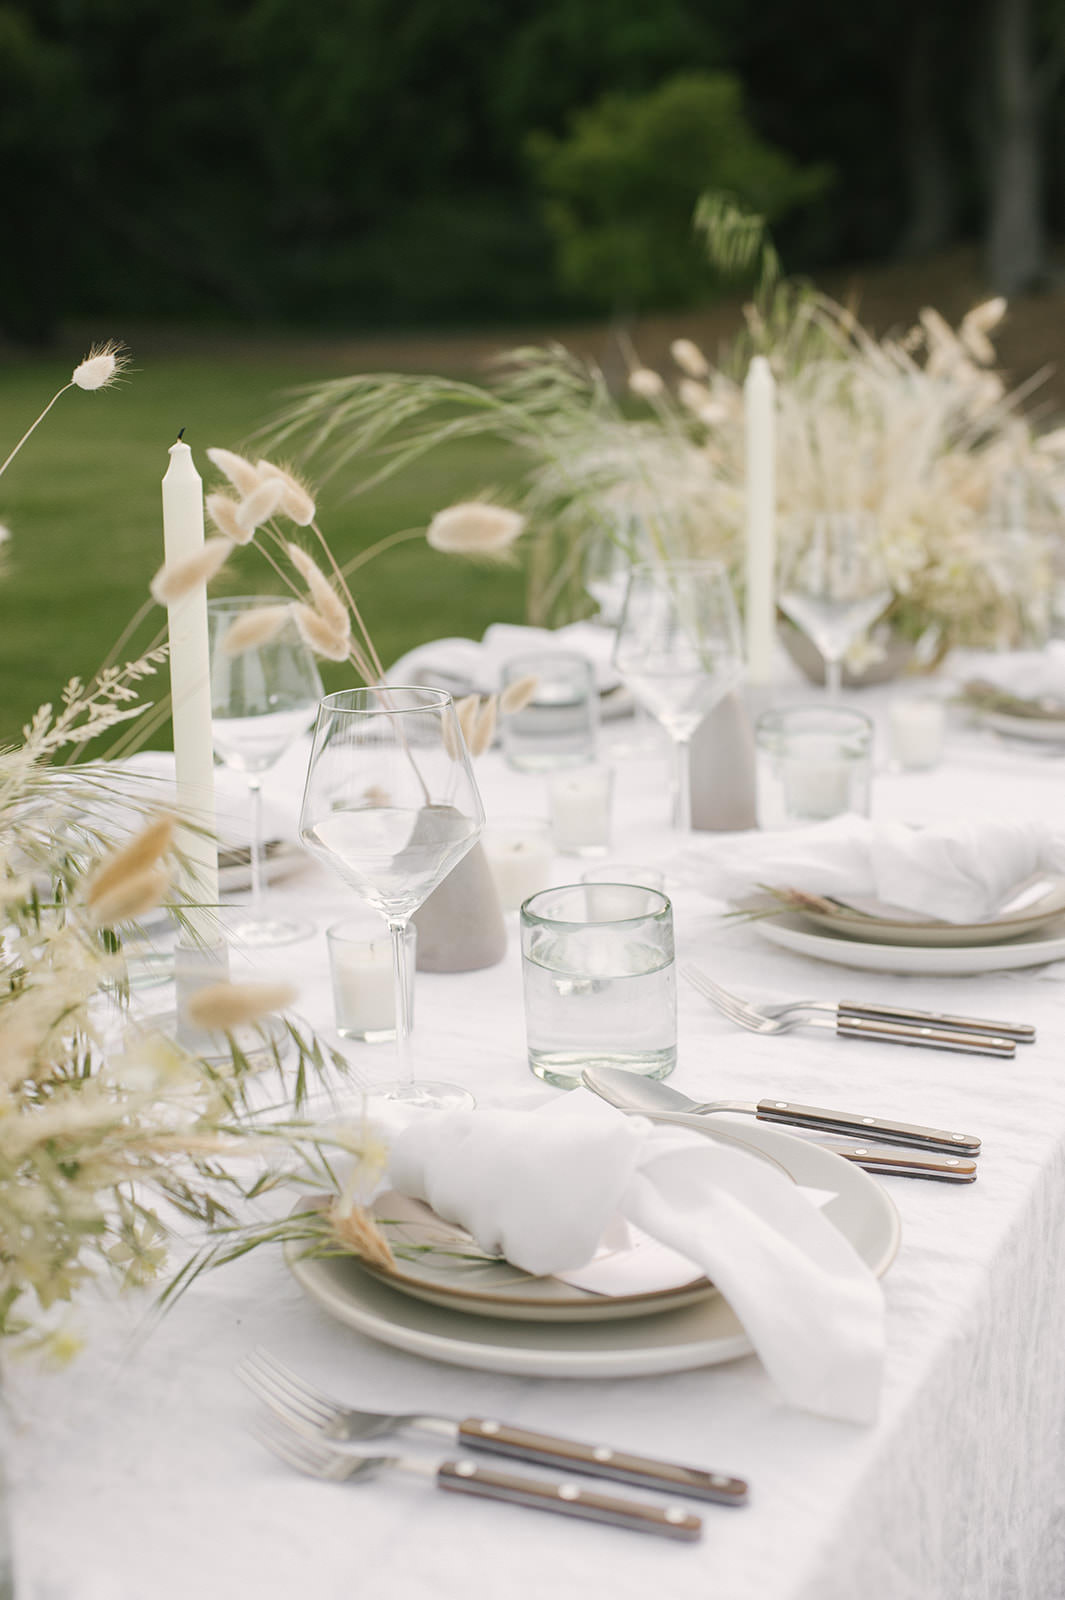 Layers of white tablescape for summer #entertaining by Jenni Kayne for Pacific Natural.